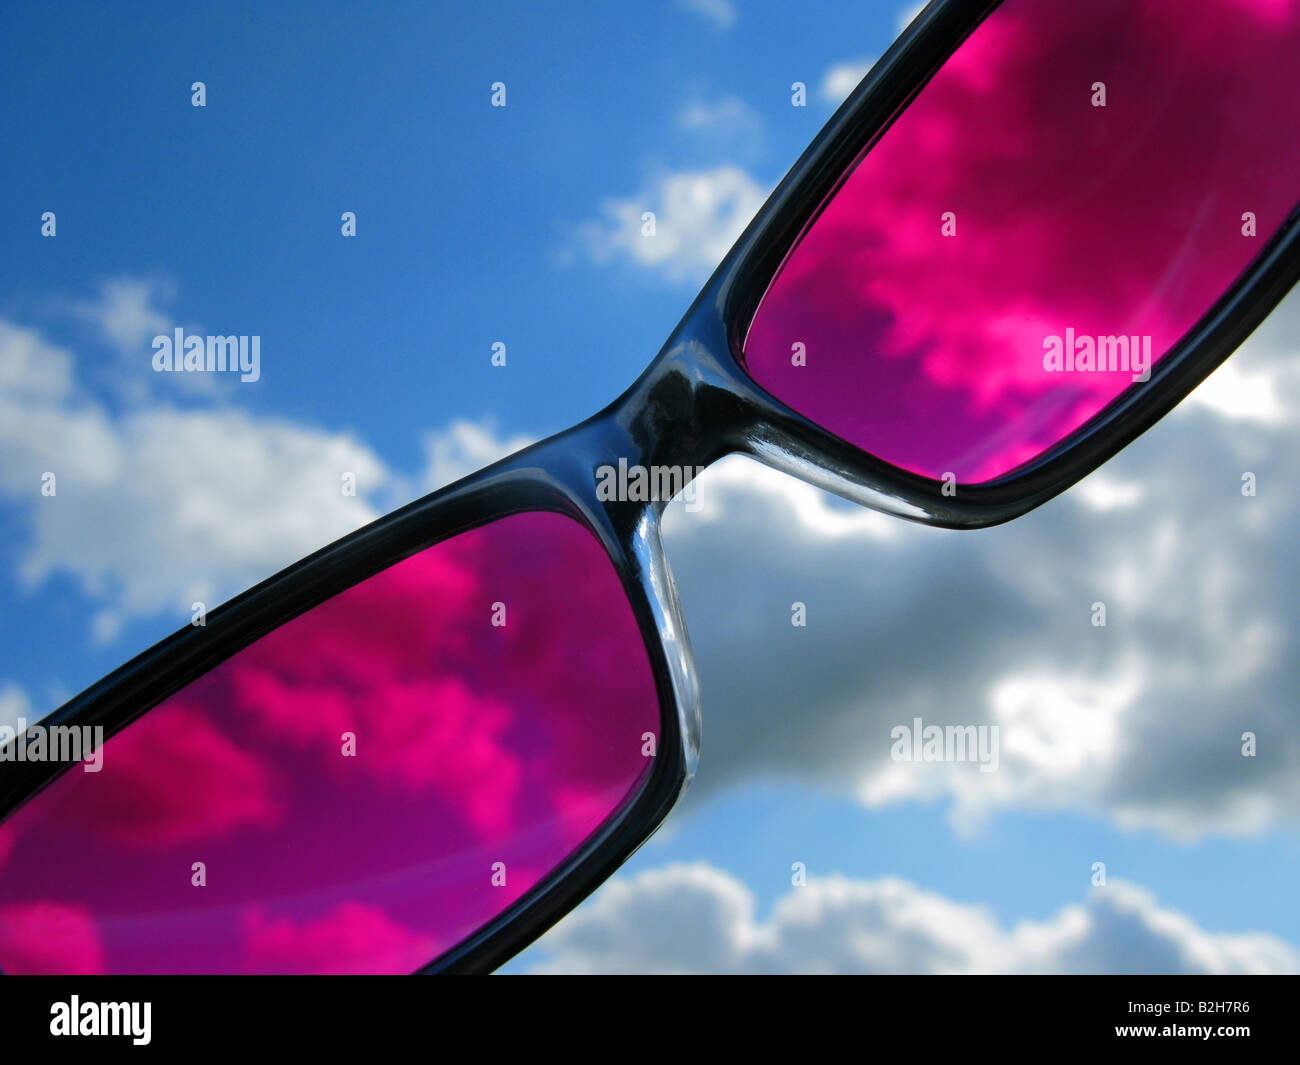 pink tinted sun glasses against blue sky - Stock Image